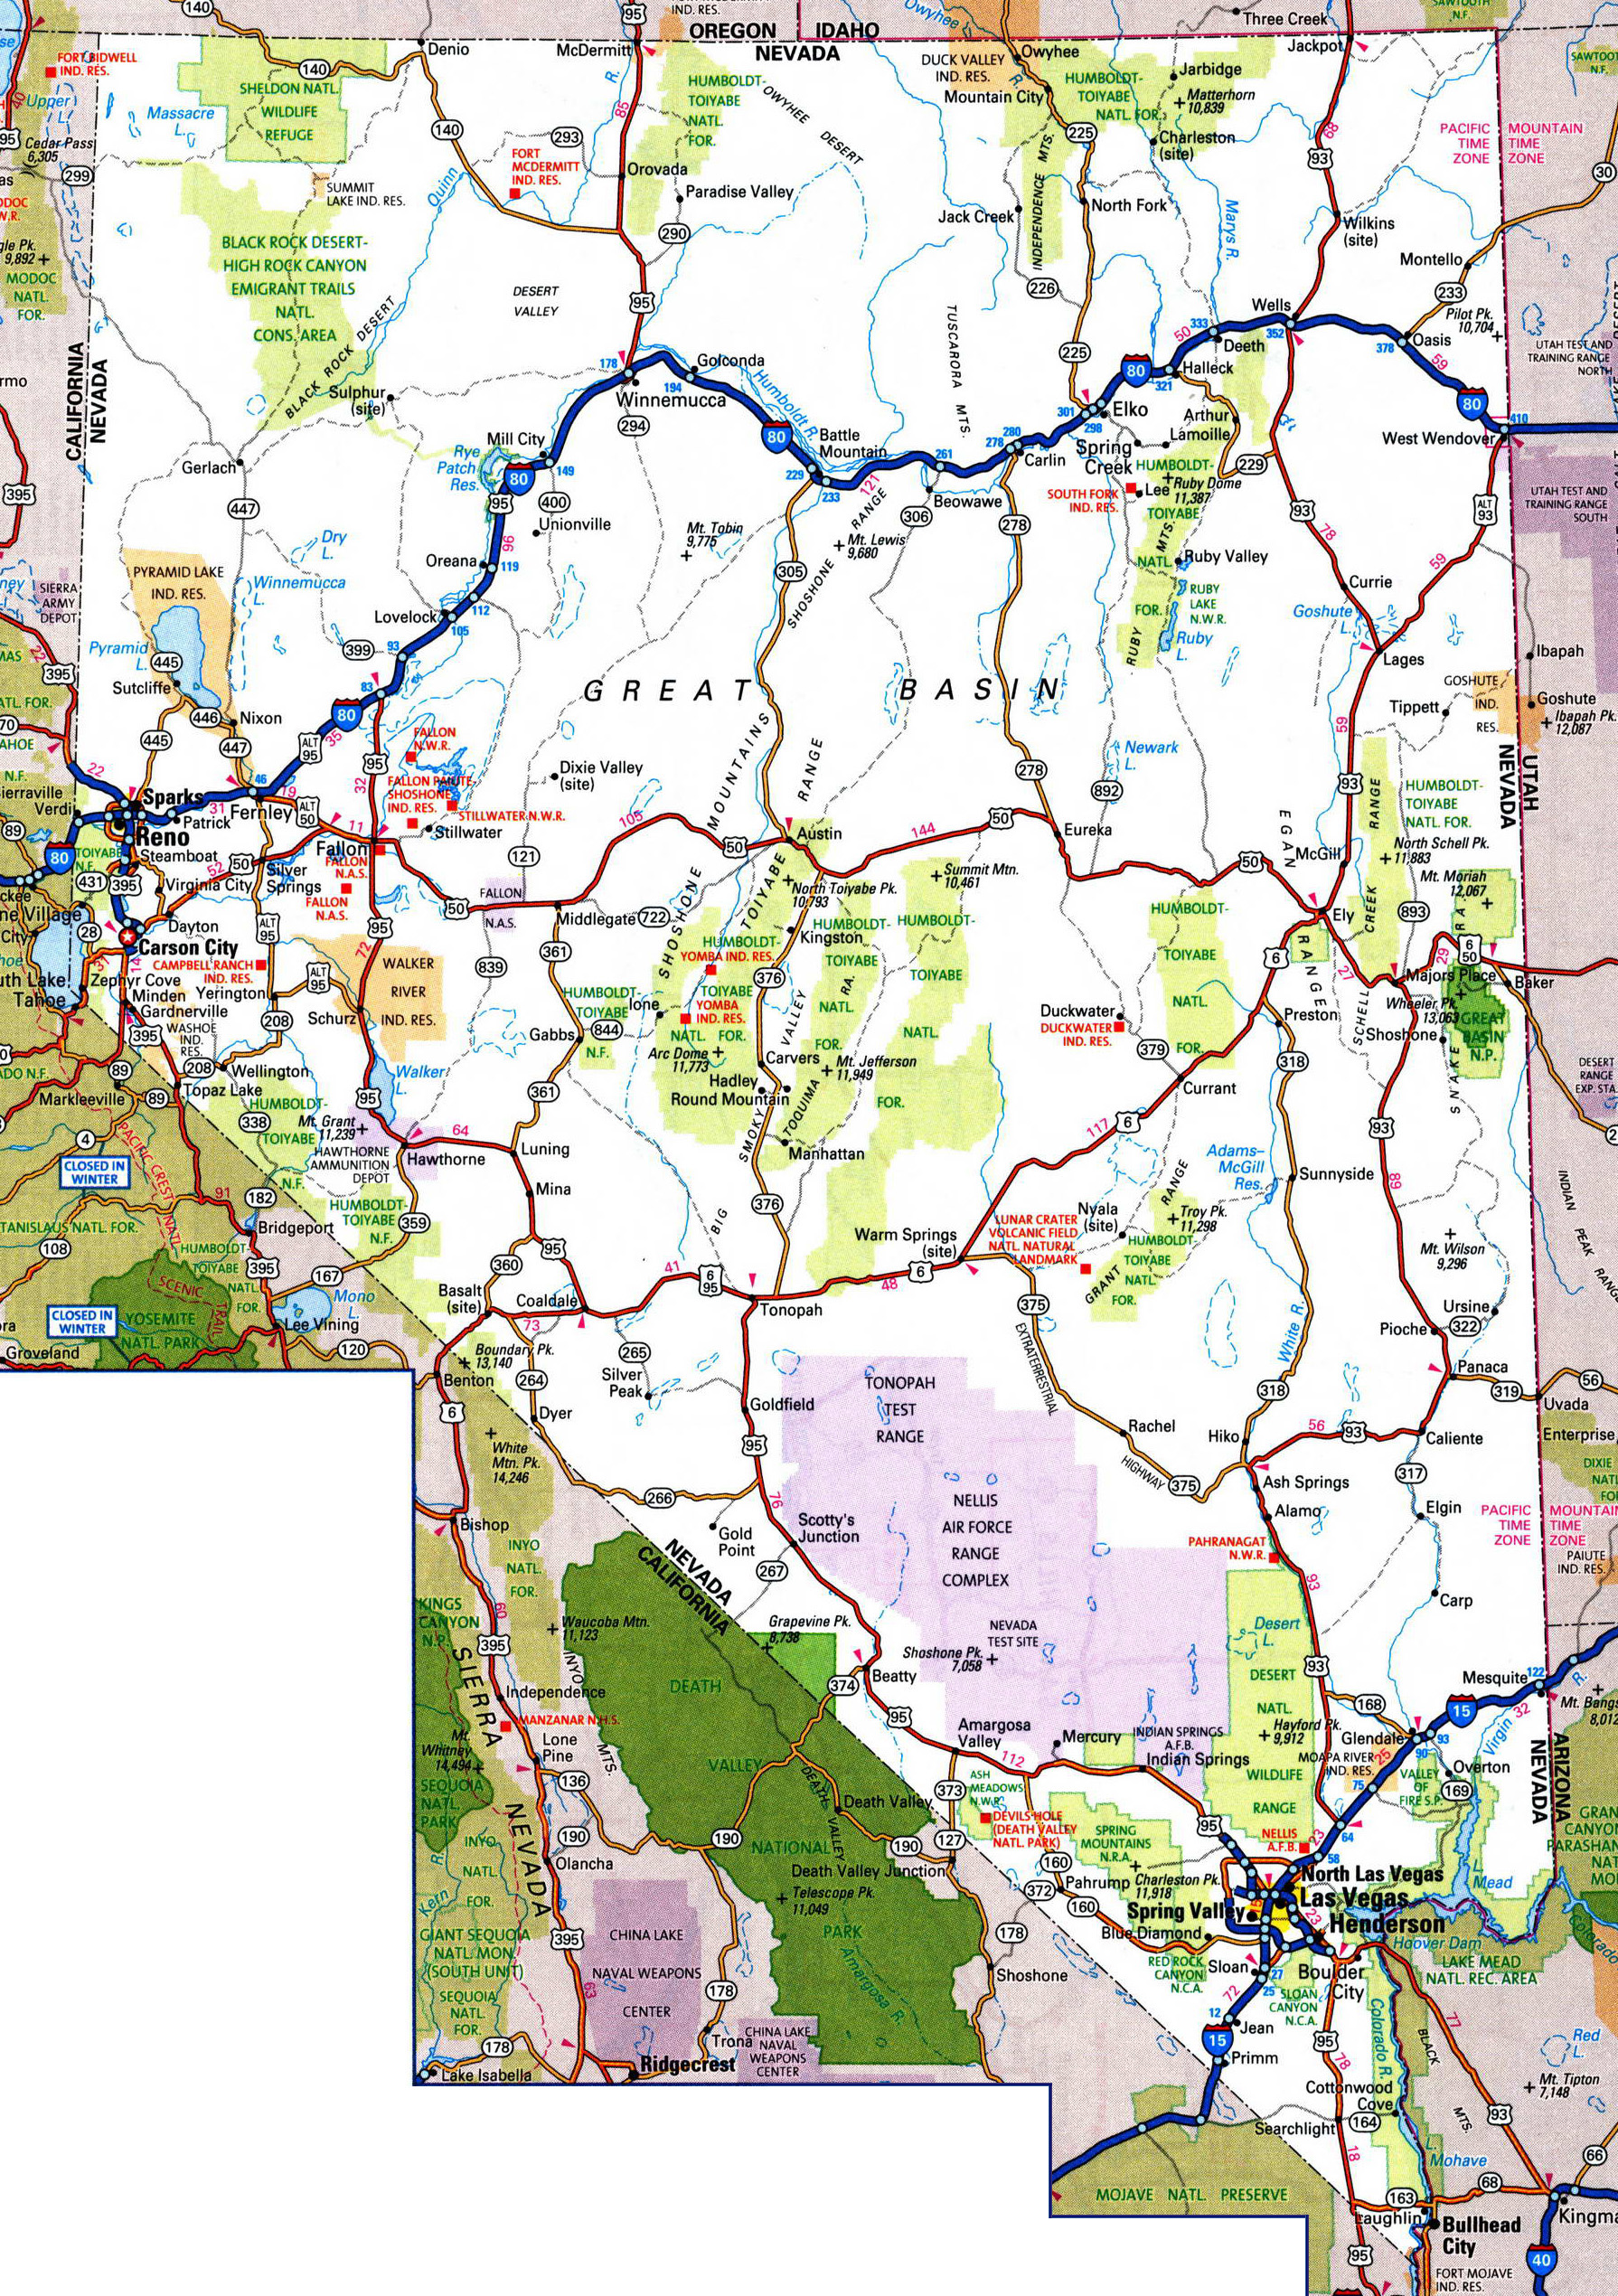 Large Detailed Roads And Highways Map Of Nevada State With Cities - Map of national parks in united states